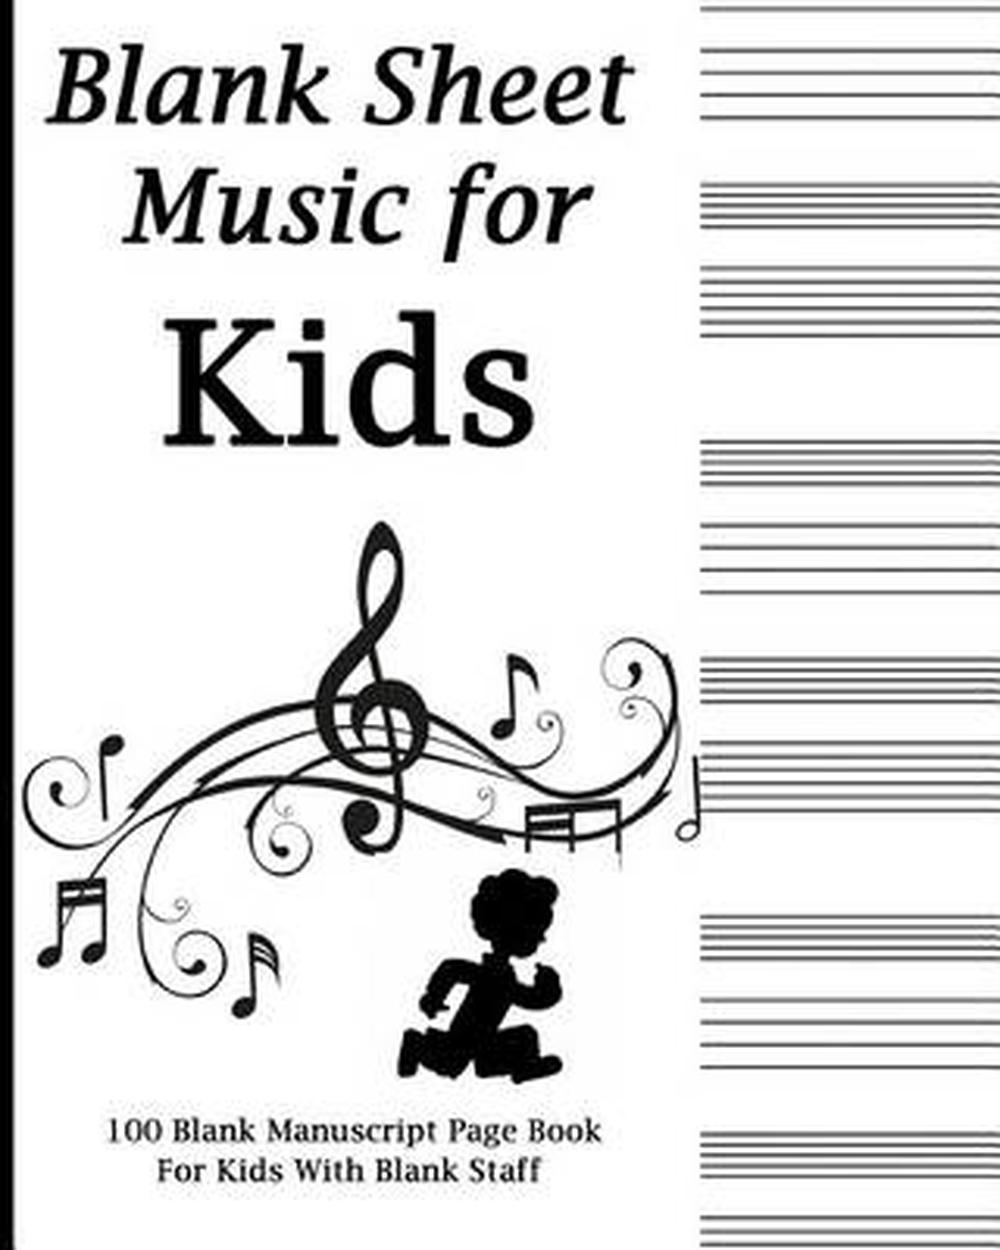 Blank Sheet Music for Kids: Black and White Music Notes